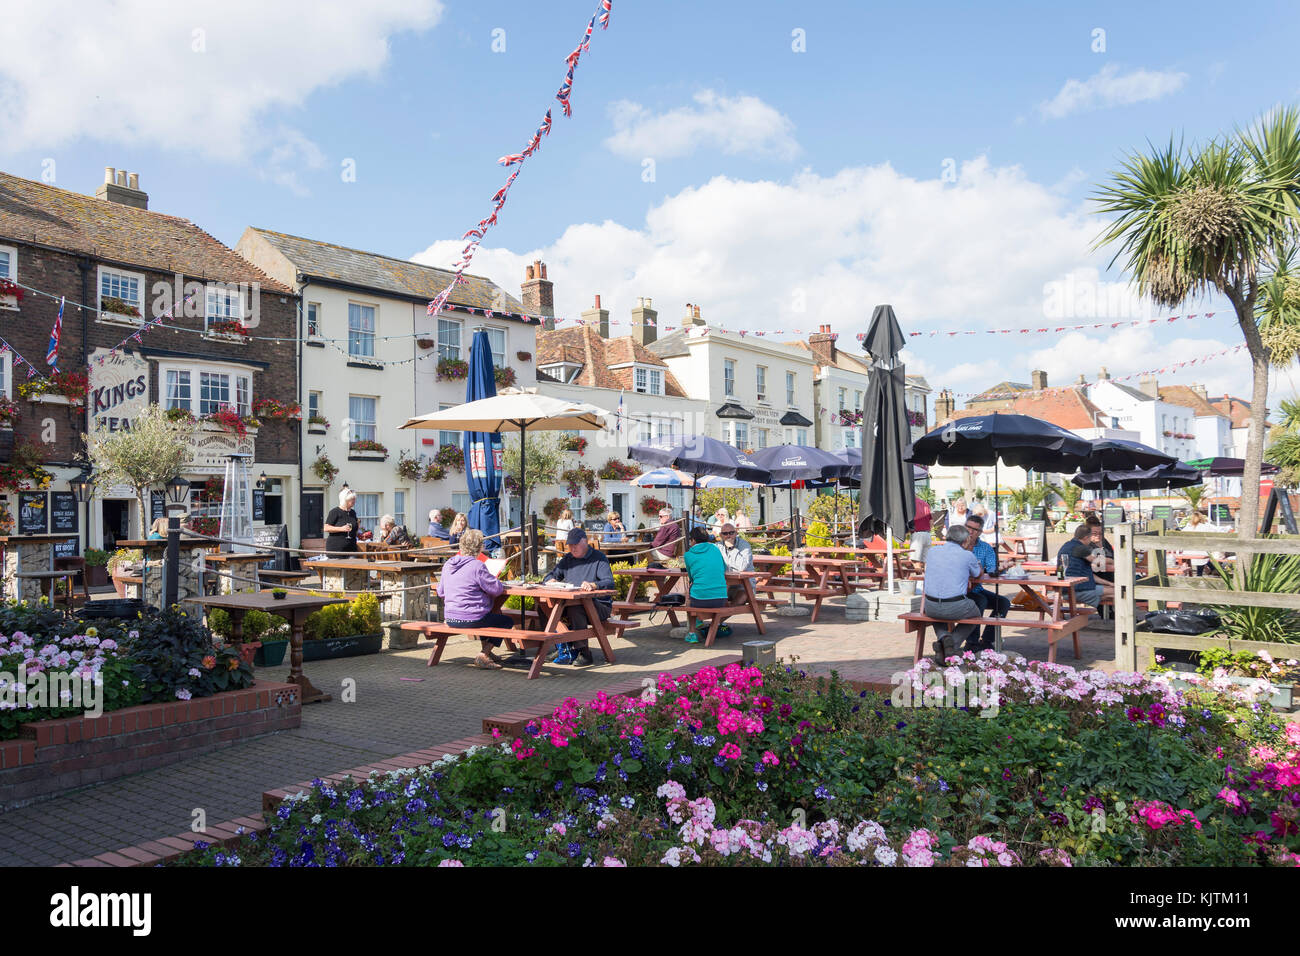 King's Head garden terrace, Beach Street, Deal, Kent, England, United Kingdom - Stock Image